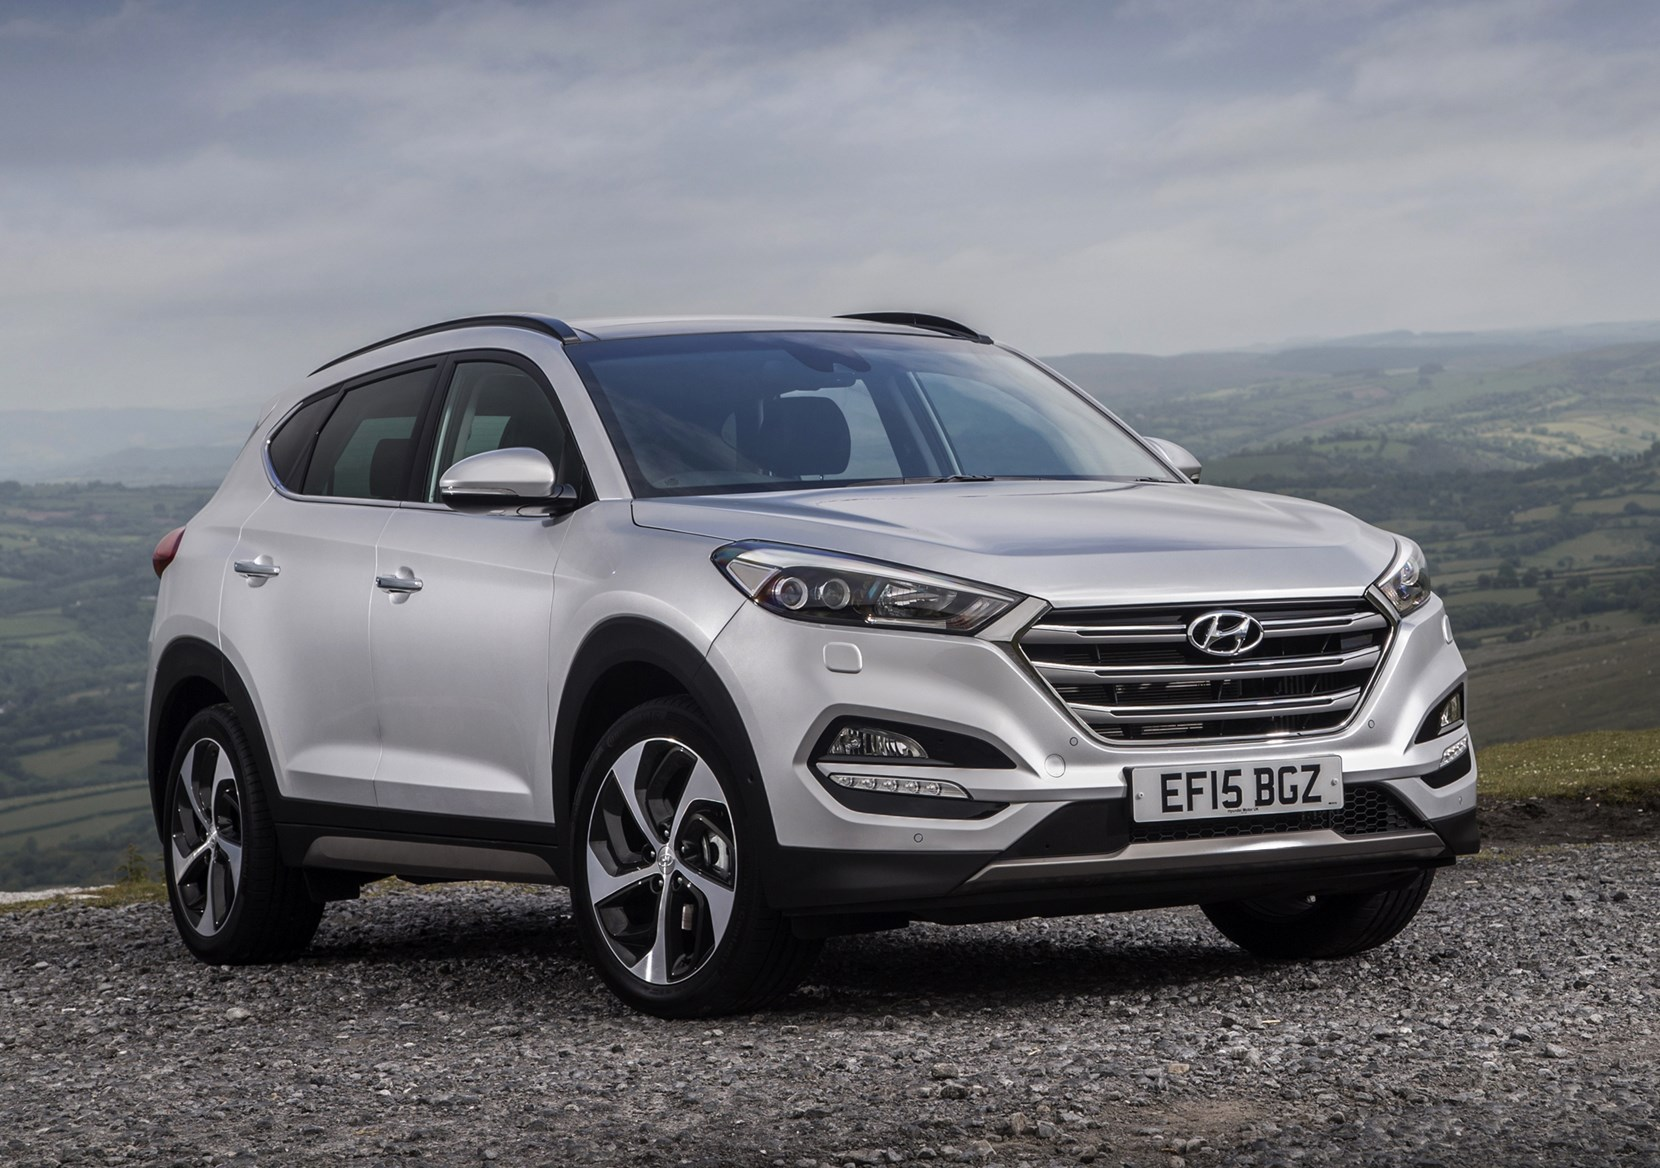 Hyundai Tucson Used Cars For Sale By Owner